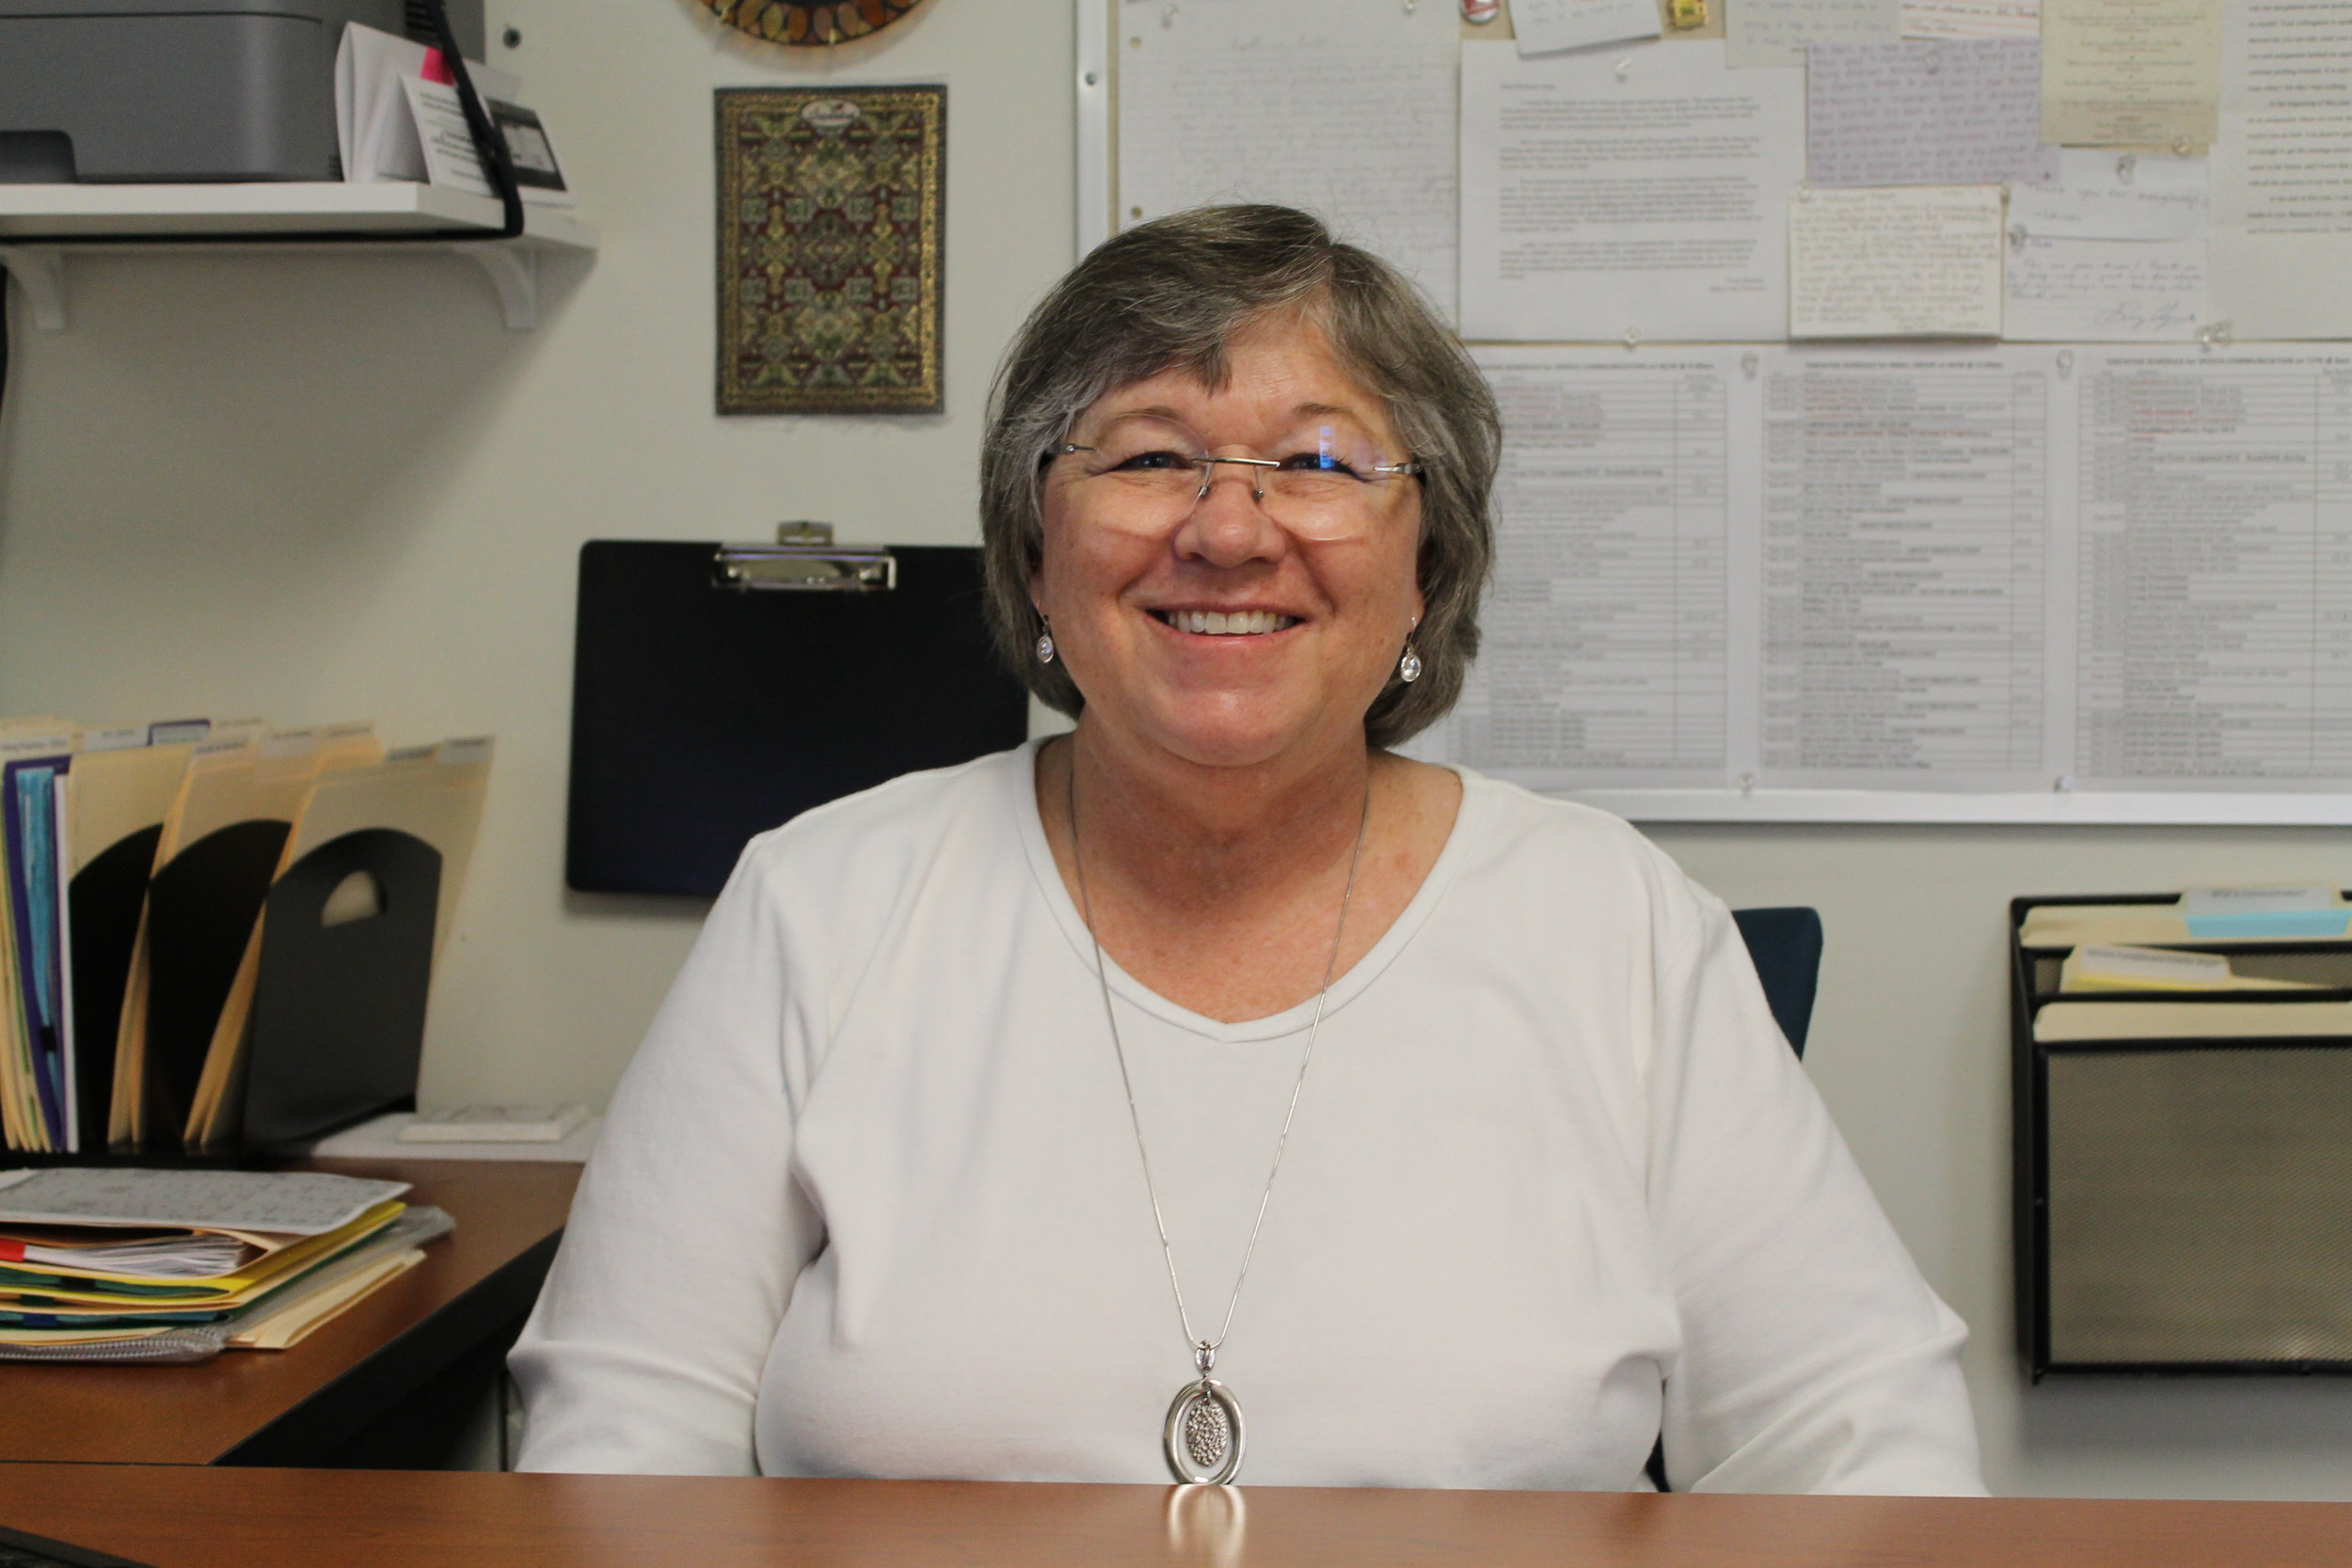 Professor Pratt smiles in the comfort of her office. Photo by Lila Cano.